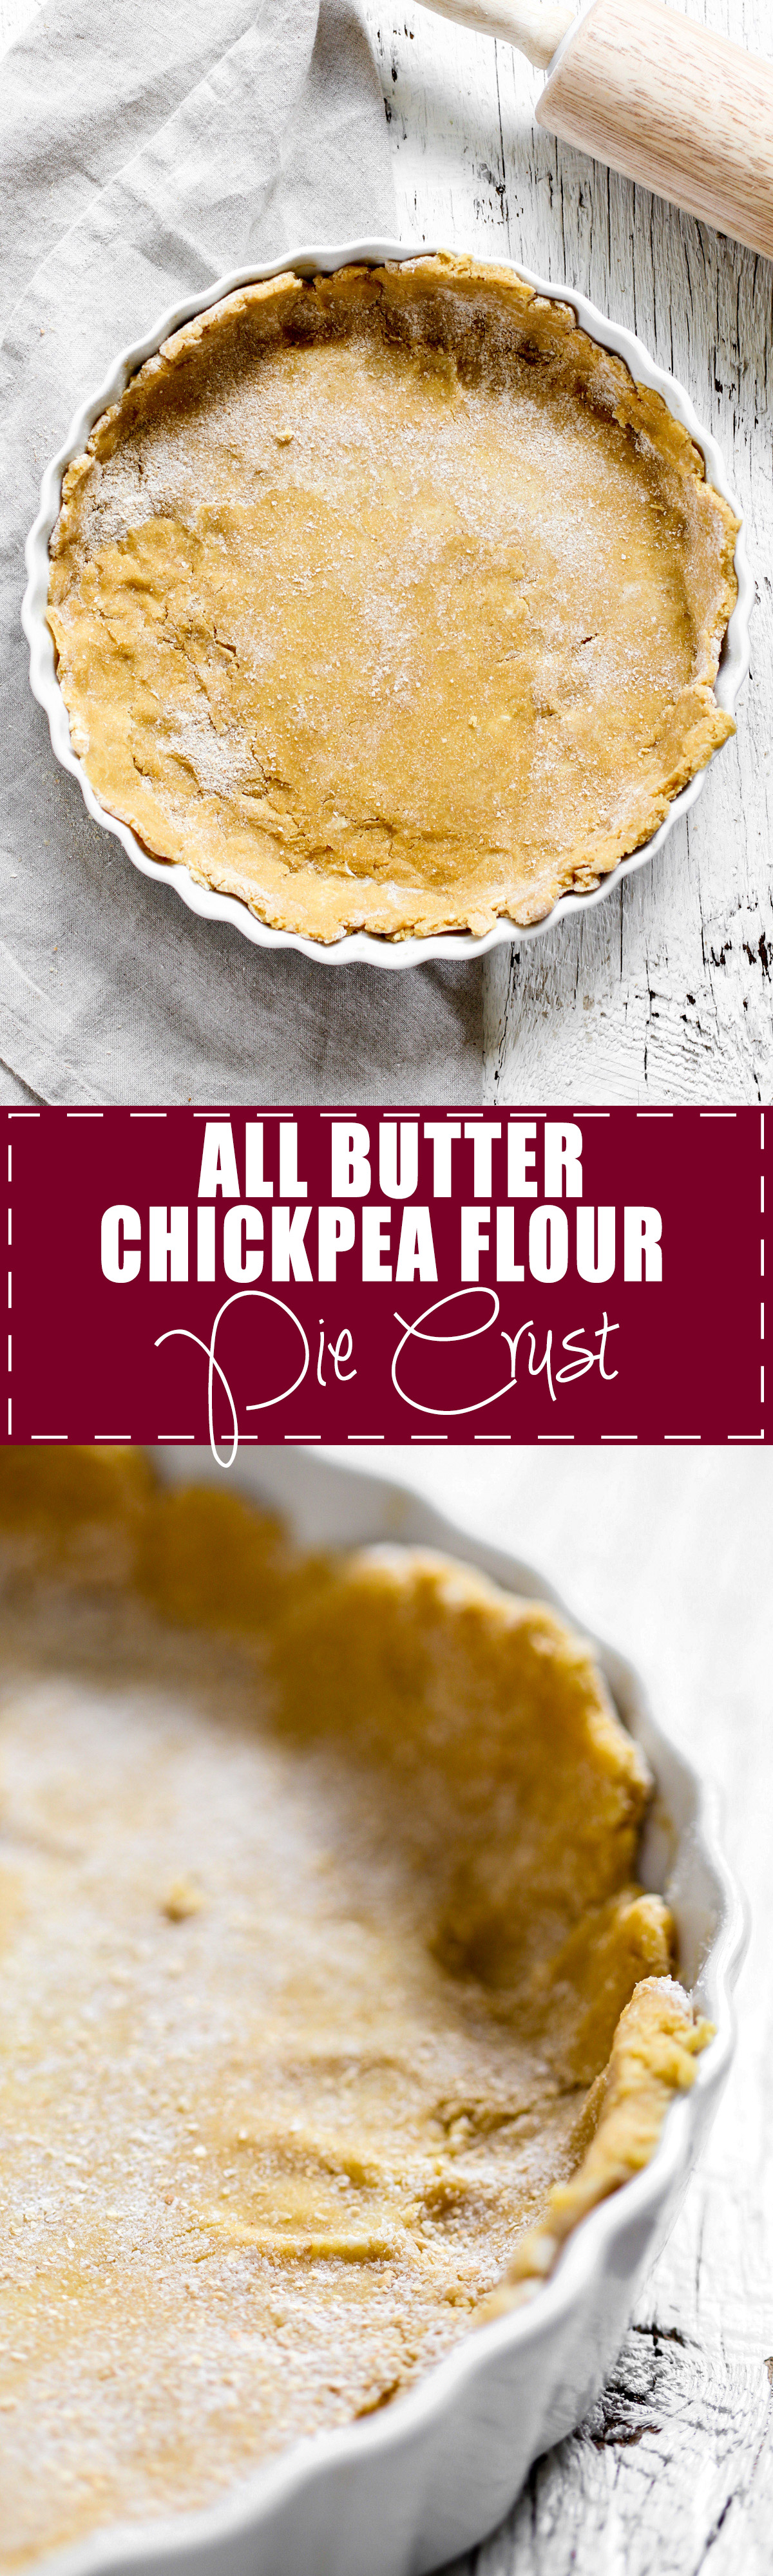 Chickpea Flour Pie Crust - This all butter chickpea flour pie crust is high protein, fiber, flavor, and is gluten free! Use it in quiches or any savory dish requiring pie crust. Everyone needs a clean and nutritious pie crust recipe! | rootsandradishes.com